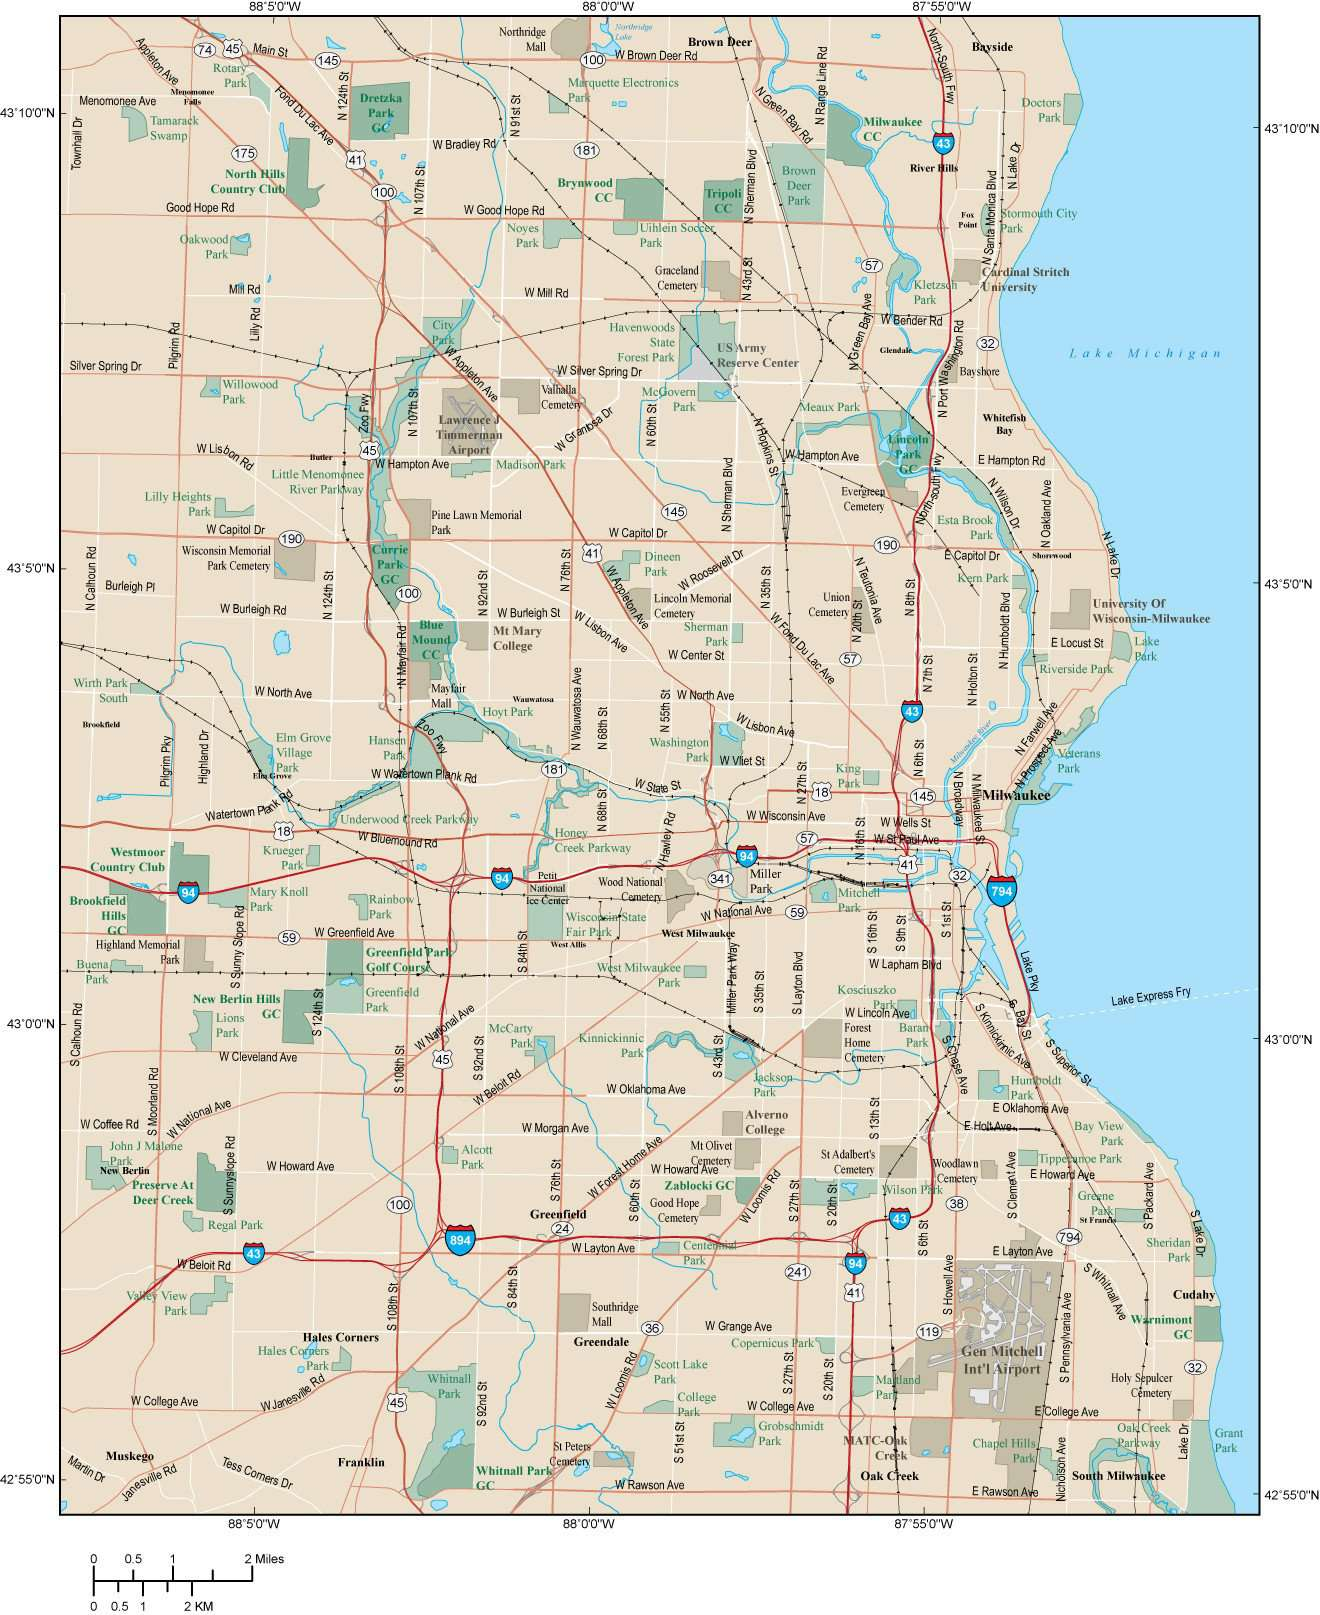 Milwaukee Map Adobe Illustrator vector format – Map Resources